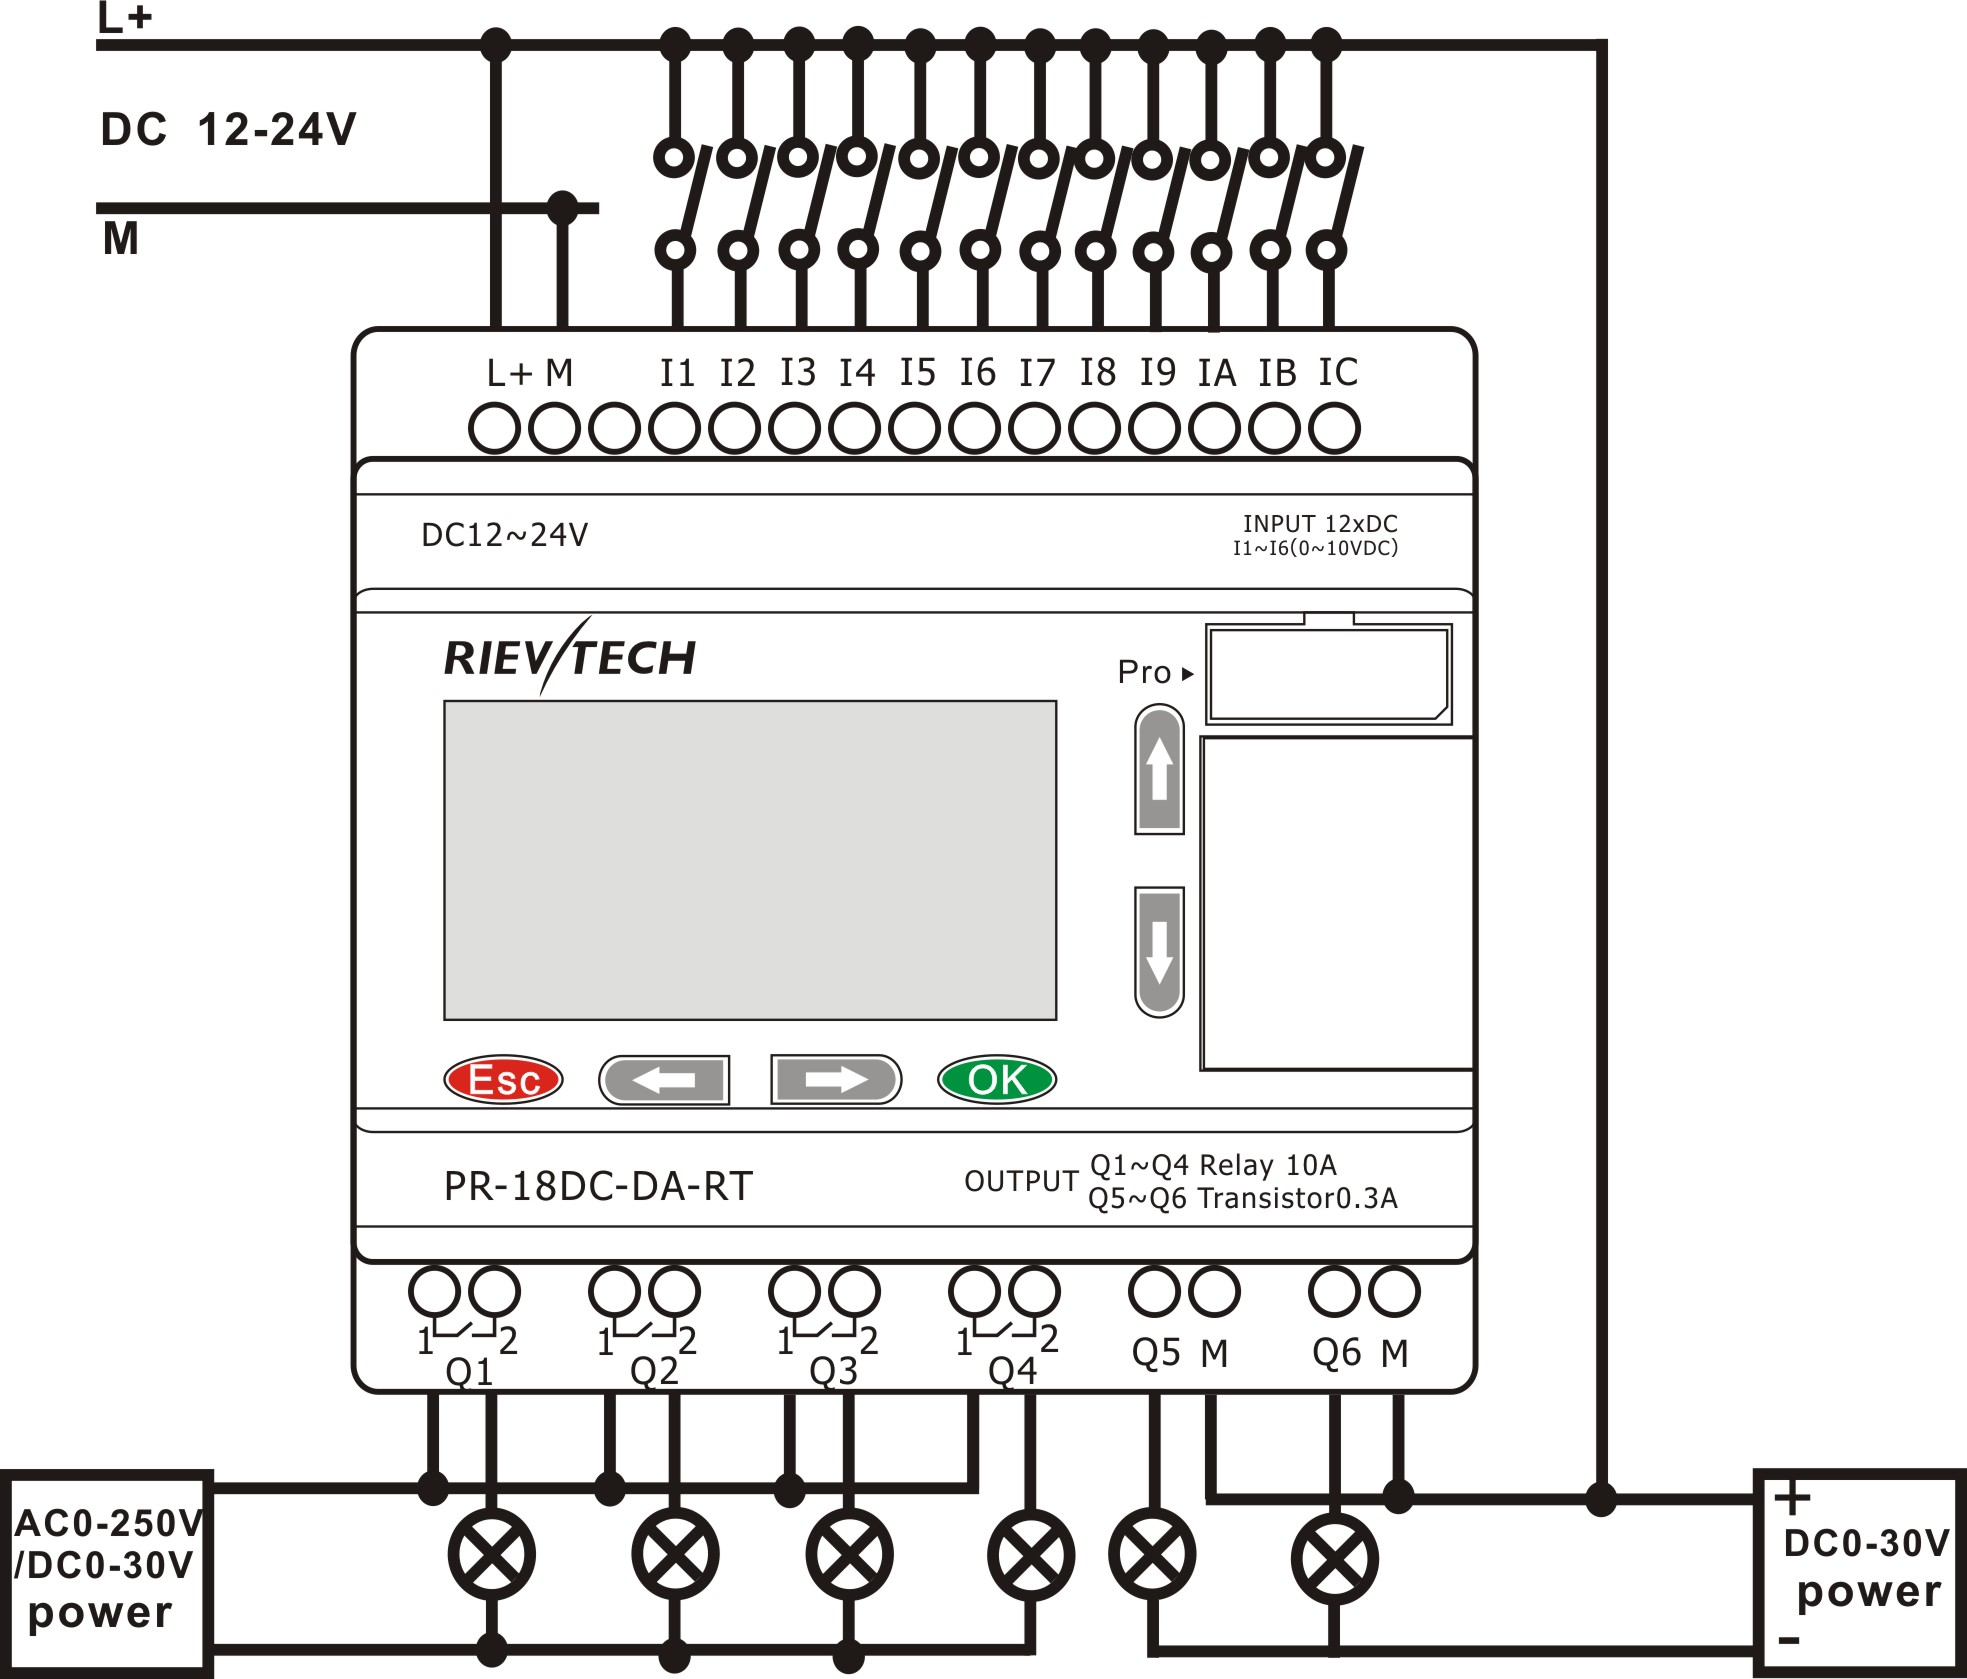 single phase transformer wiring diagram solidfonts 3 phase banks archive powerlineman com forums using single phase transformers to create 3 systems single phase transformer wiring diagram